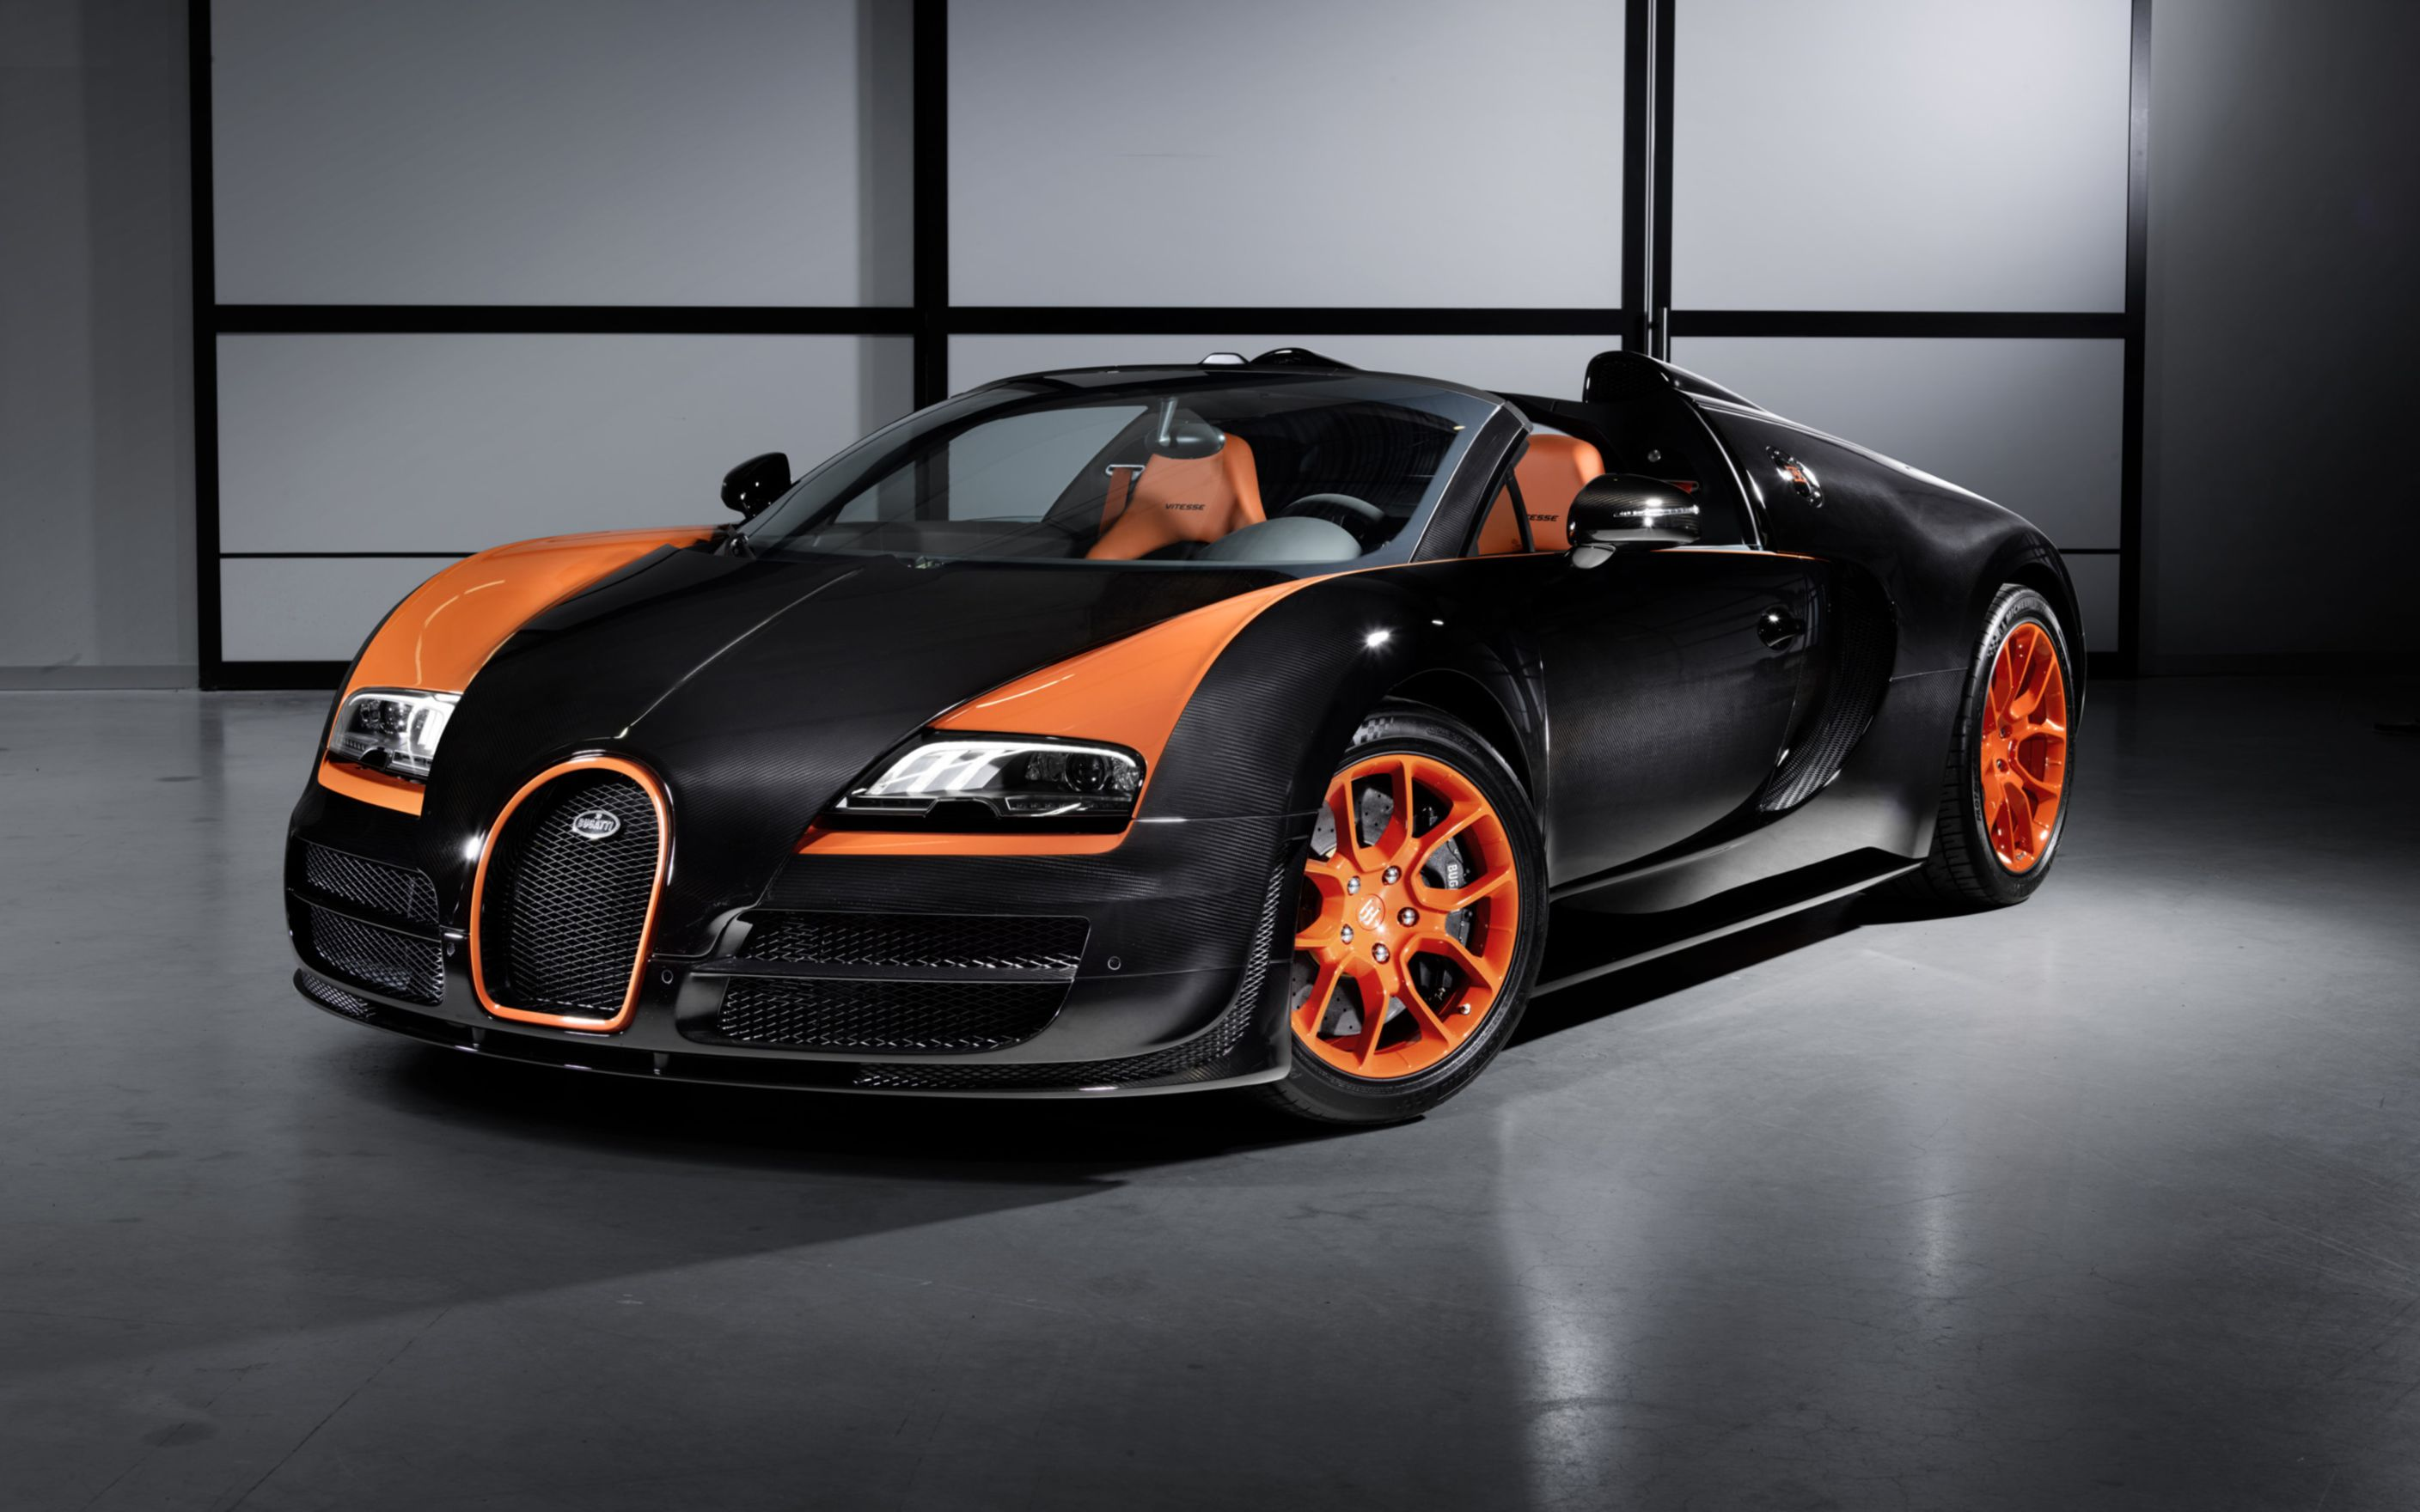 Download free HD 2013 Bugatti Veyron 16 4 Grand Sport Vitesse Wide Wallpaper, image